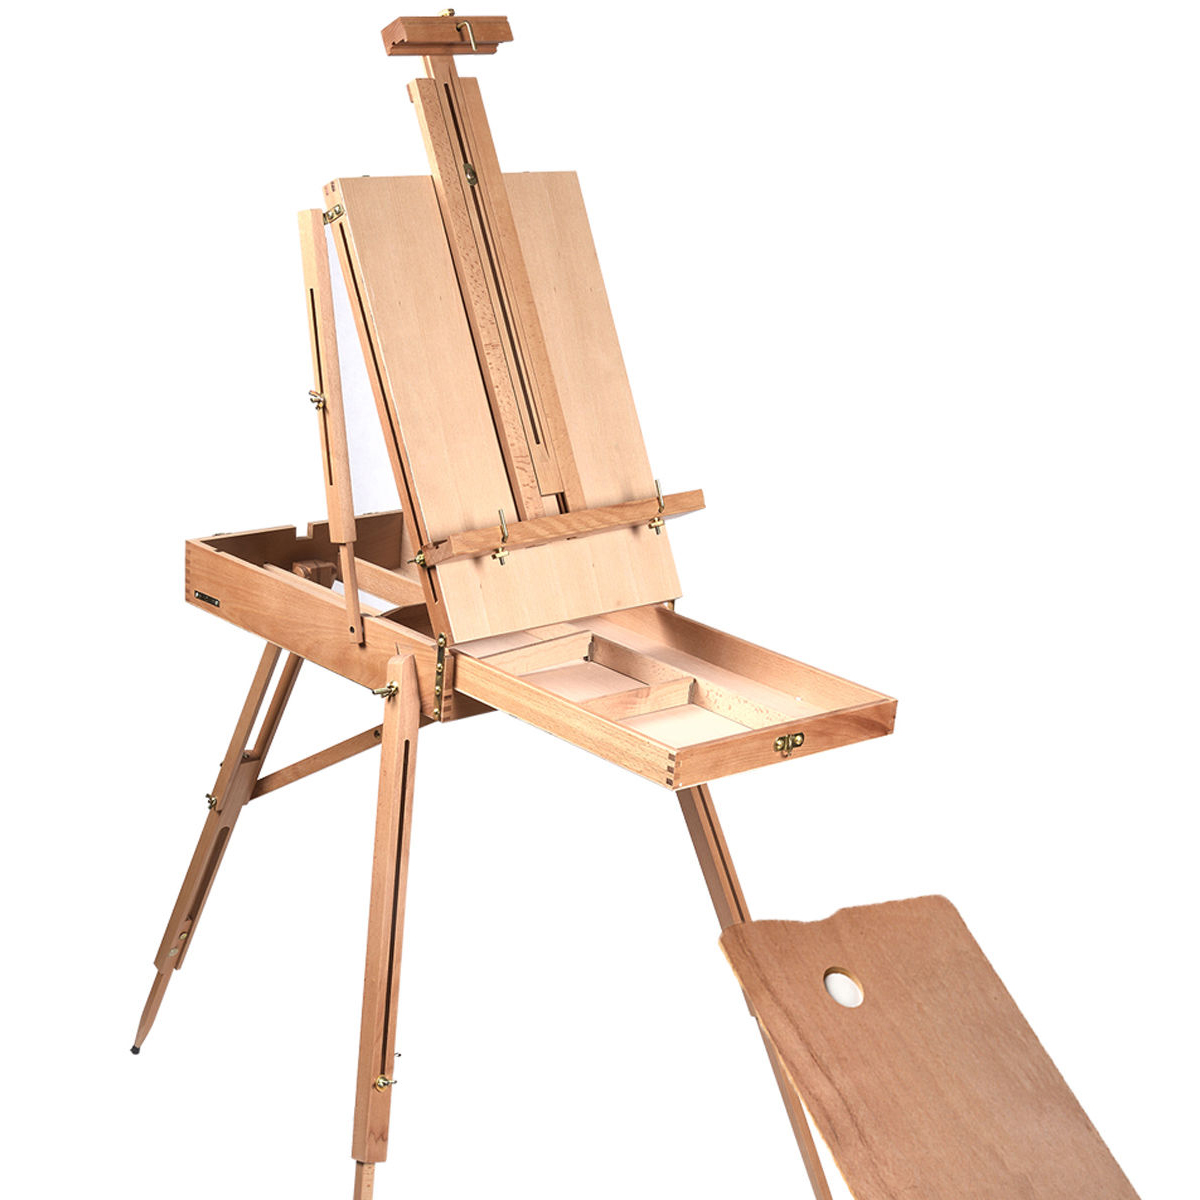 Professional Folding Art Wood Wooden Easel Paint Sketch Drawing Box Tripod Stand for Oil Painting Sketching Painting Supplies фотобумага cactus cs ga523050 a5 230г м2 50л глянцевая для струйной печати